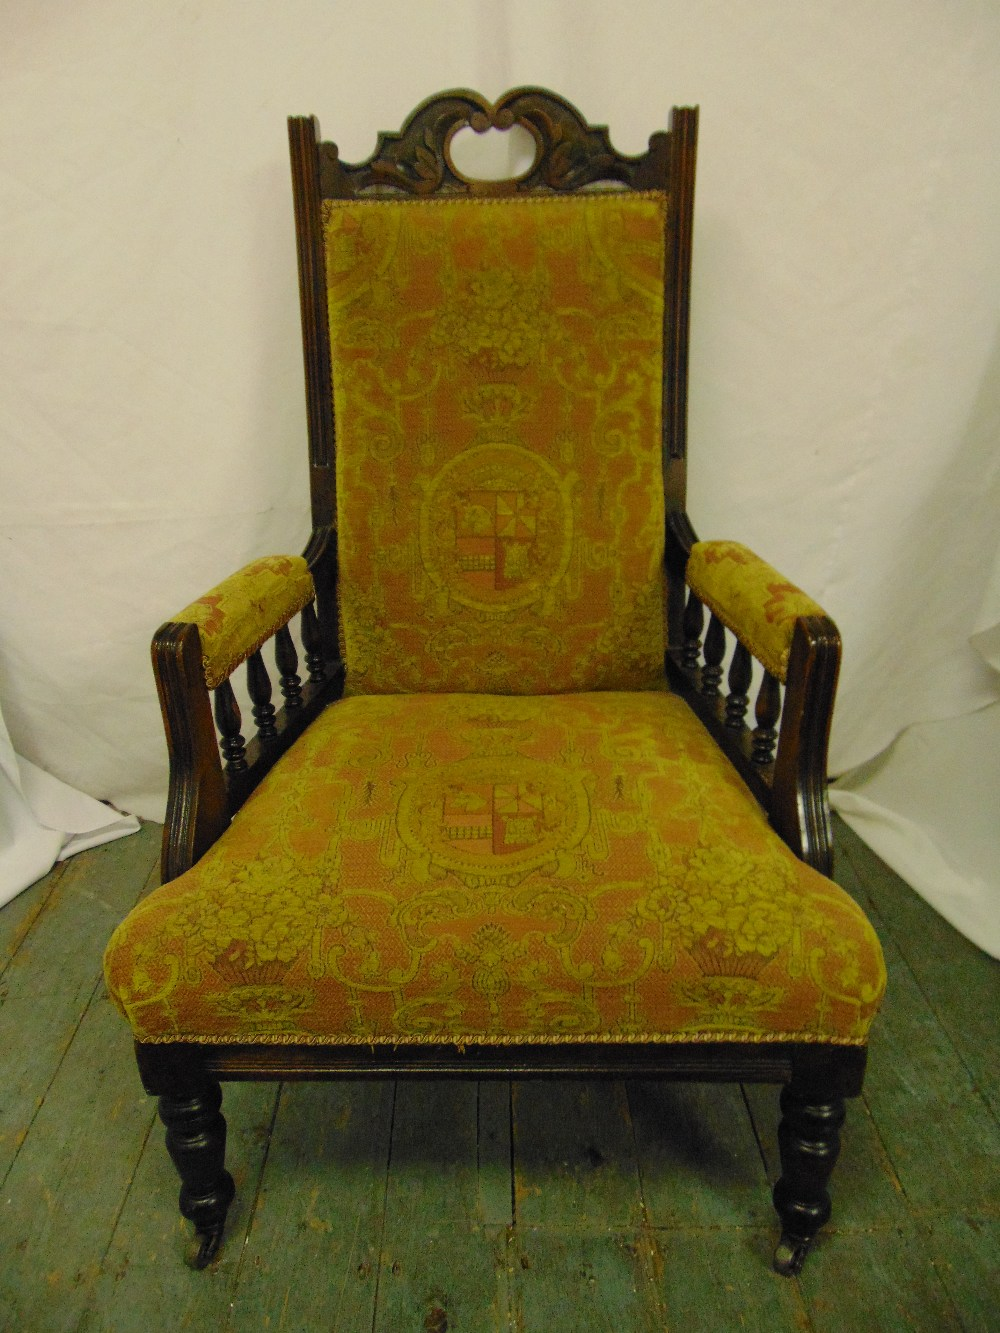 Lot 29 - An Edwardian mahogany upholstered armchair, galleried arms on four tuned cylindrical legs